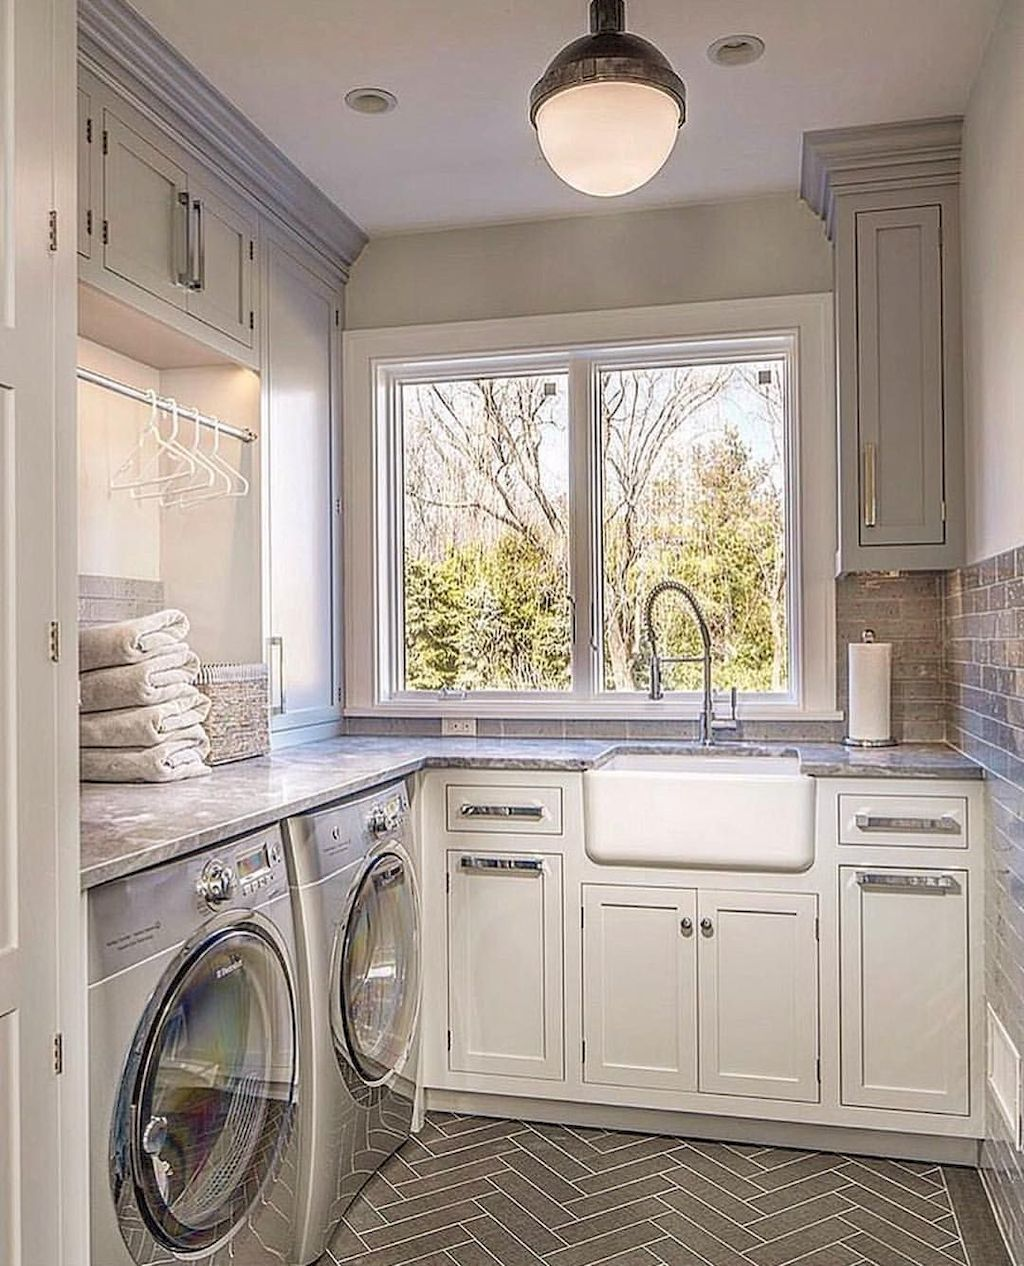 55 Small and Functional Laundry Room Design Ideas - Gladecor.com